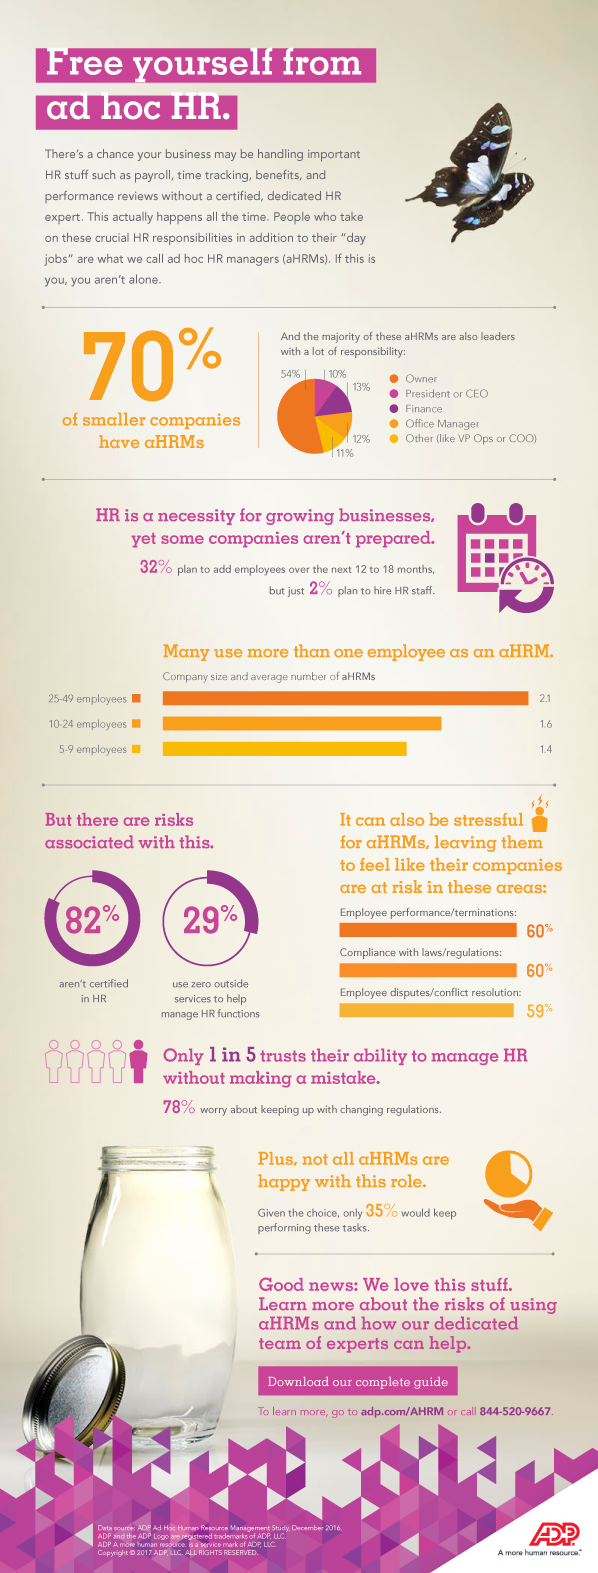 Infographic - Free yourself from ad hoc HR